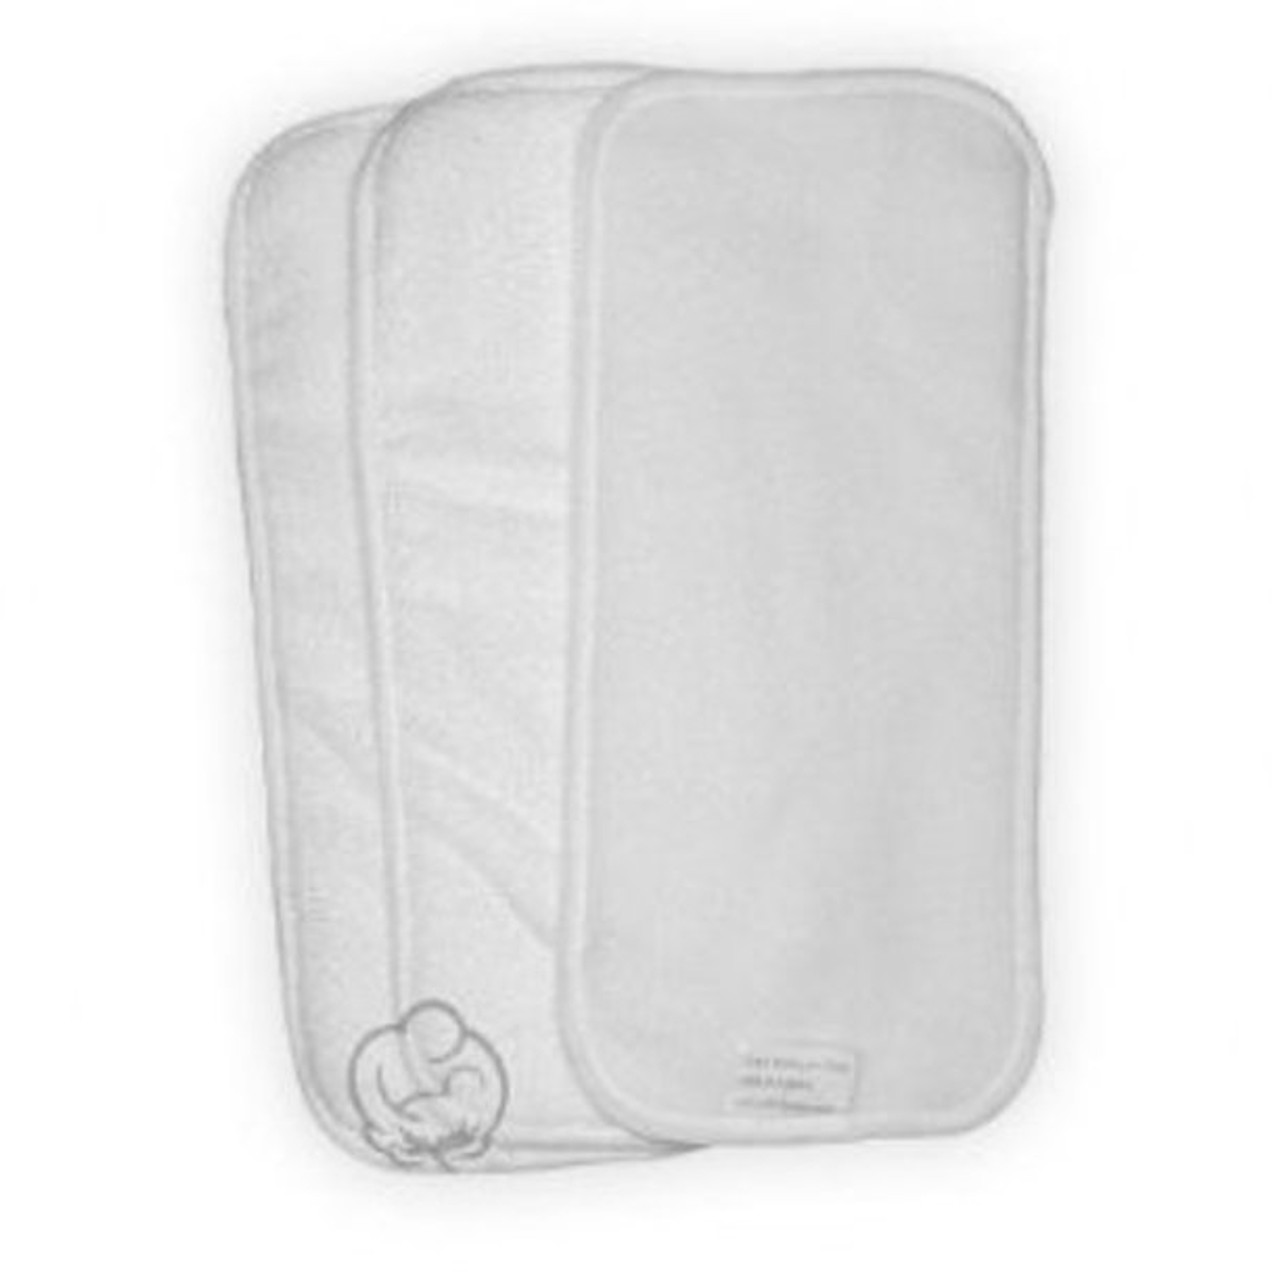 Stay Dry Cloth Diaper Liners - Set of 3